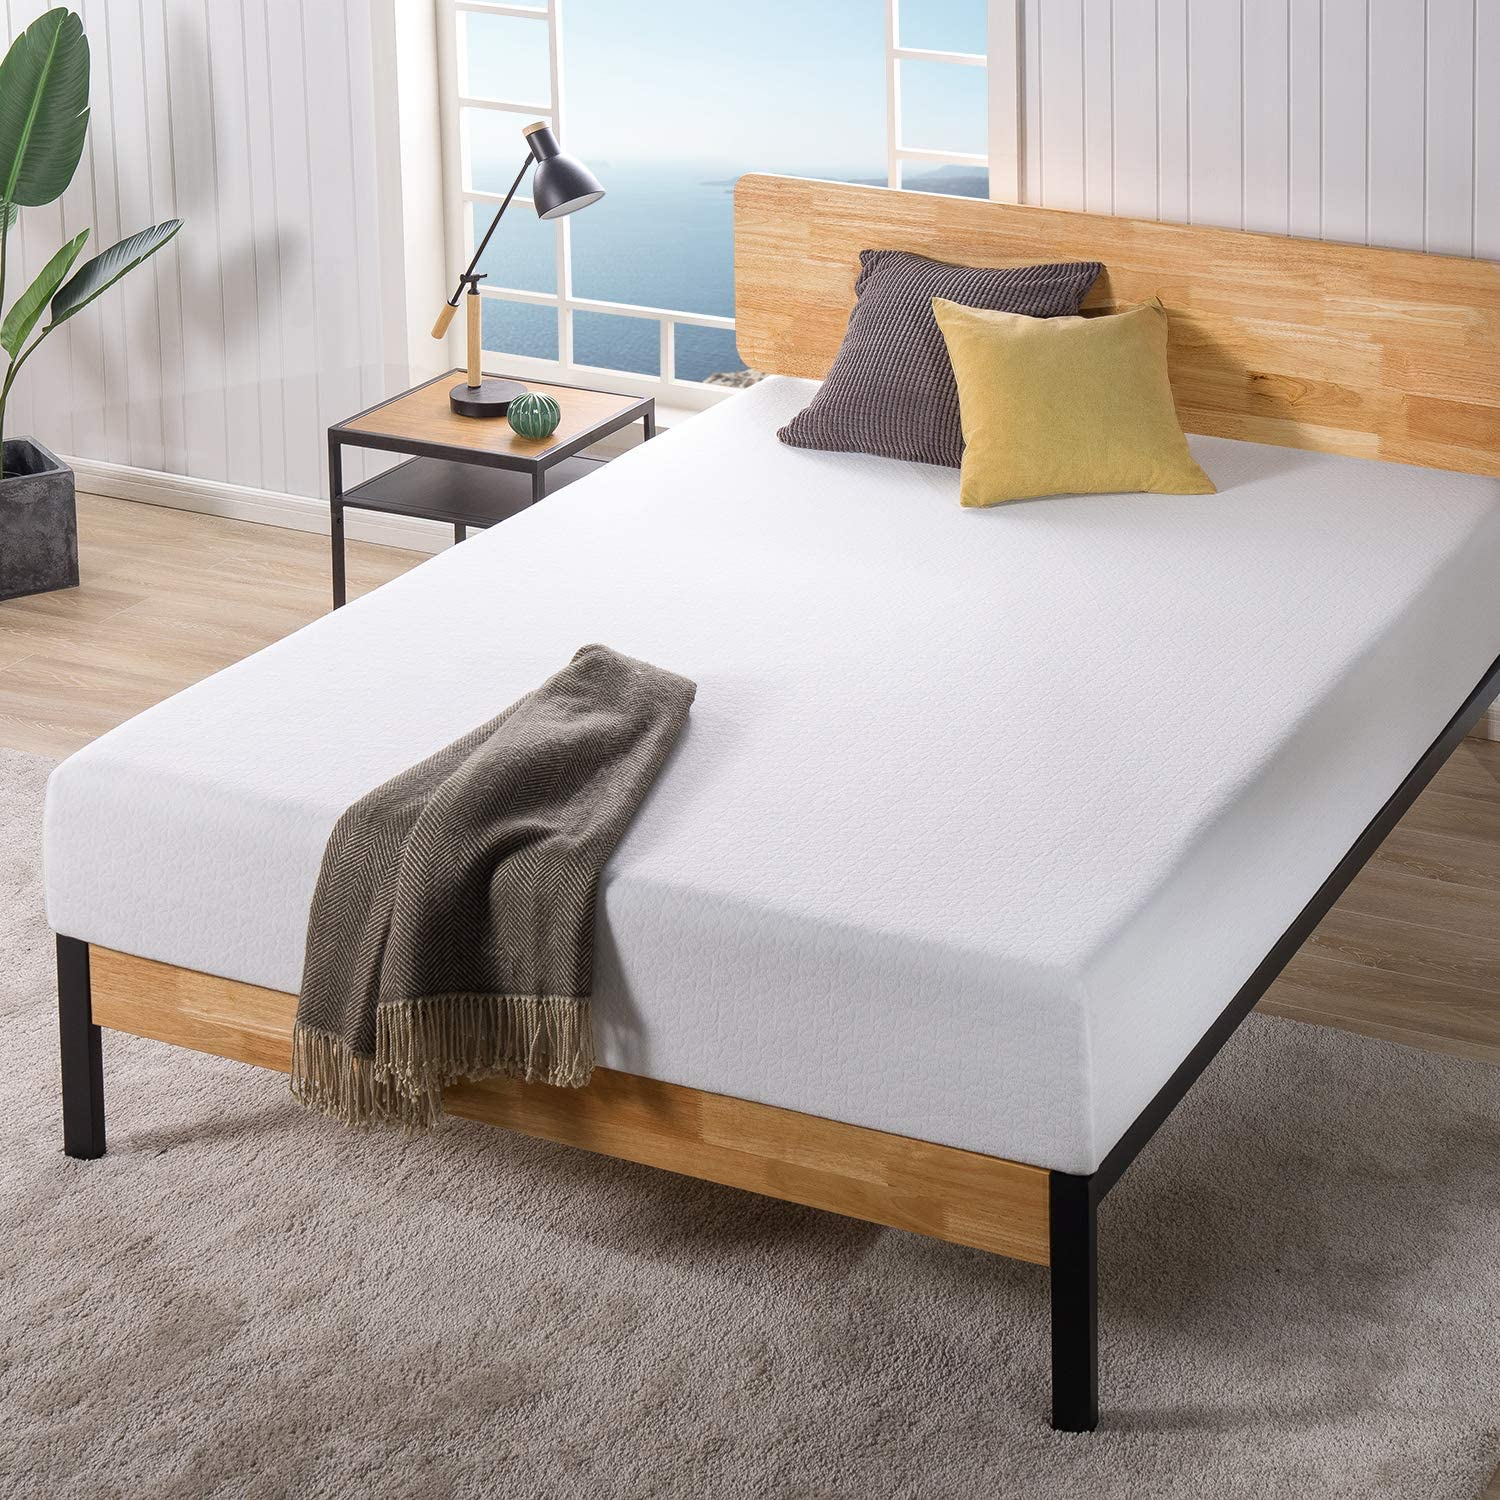 10 best mattresses for back pain relief in 2021. Zinus Ultima Memory Foam Mattress photo.